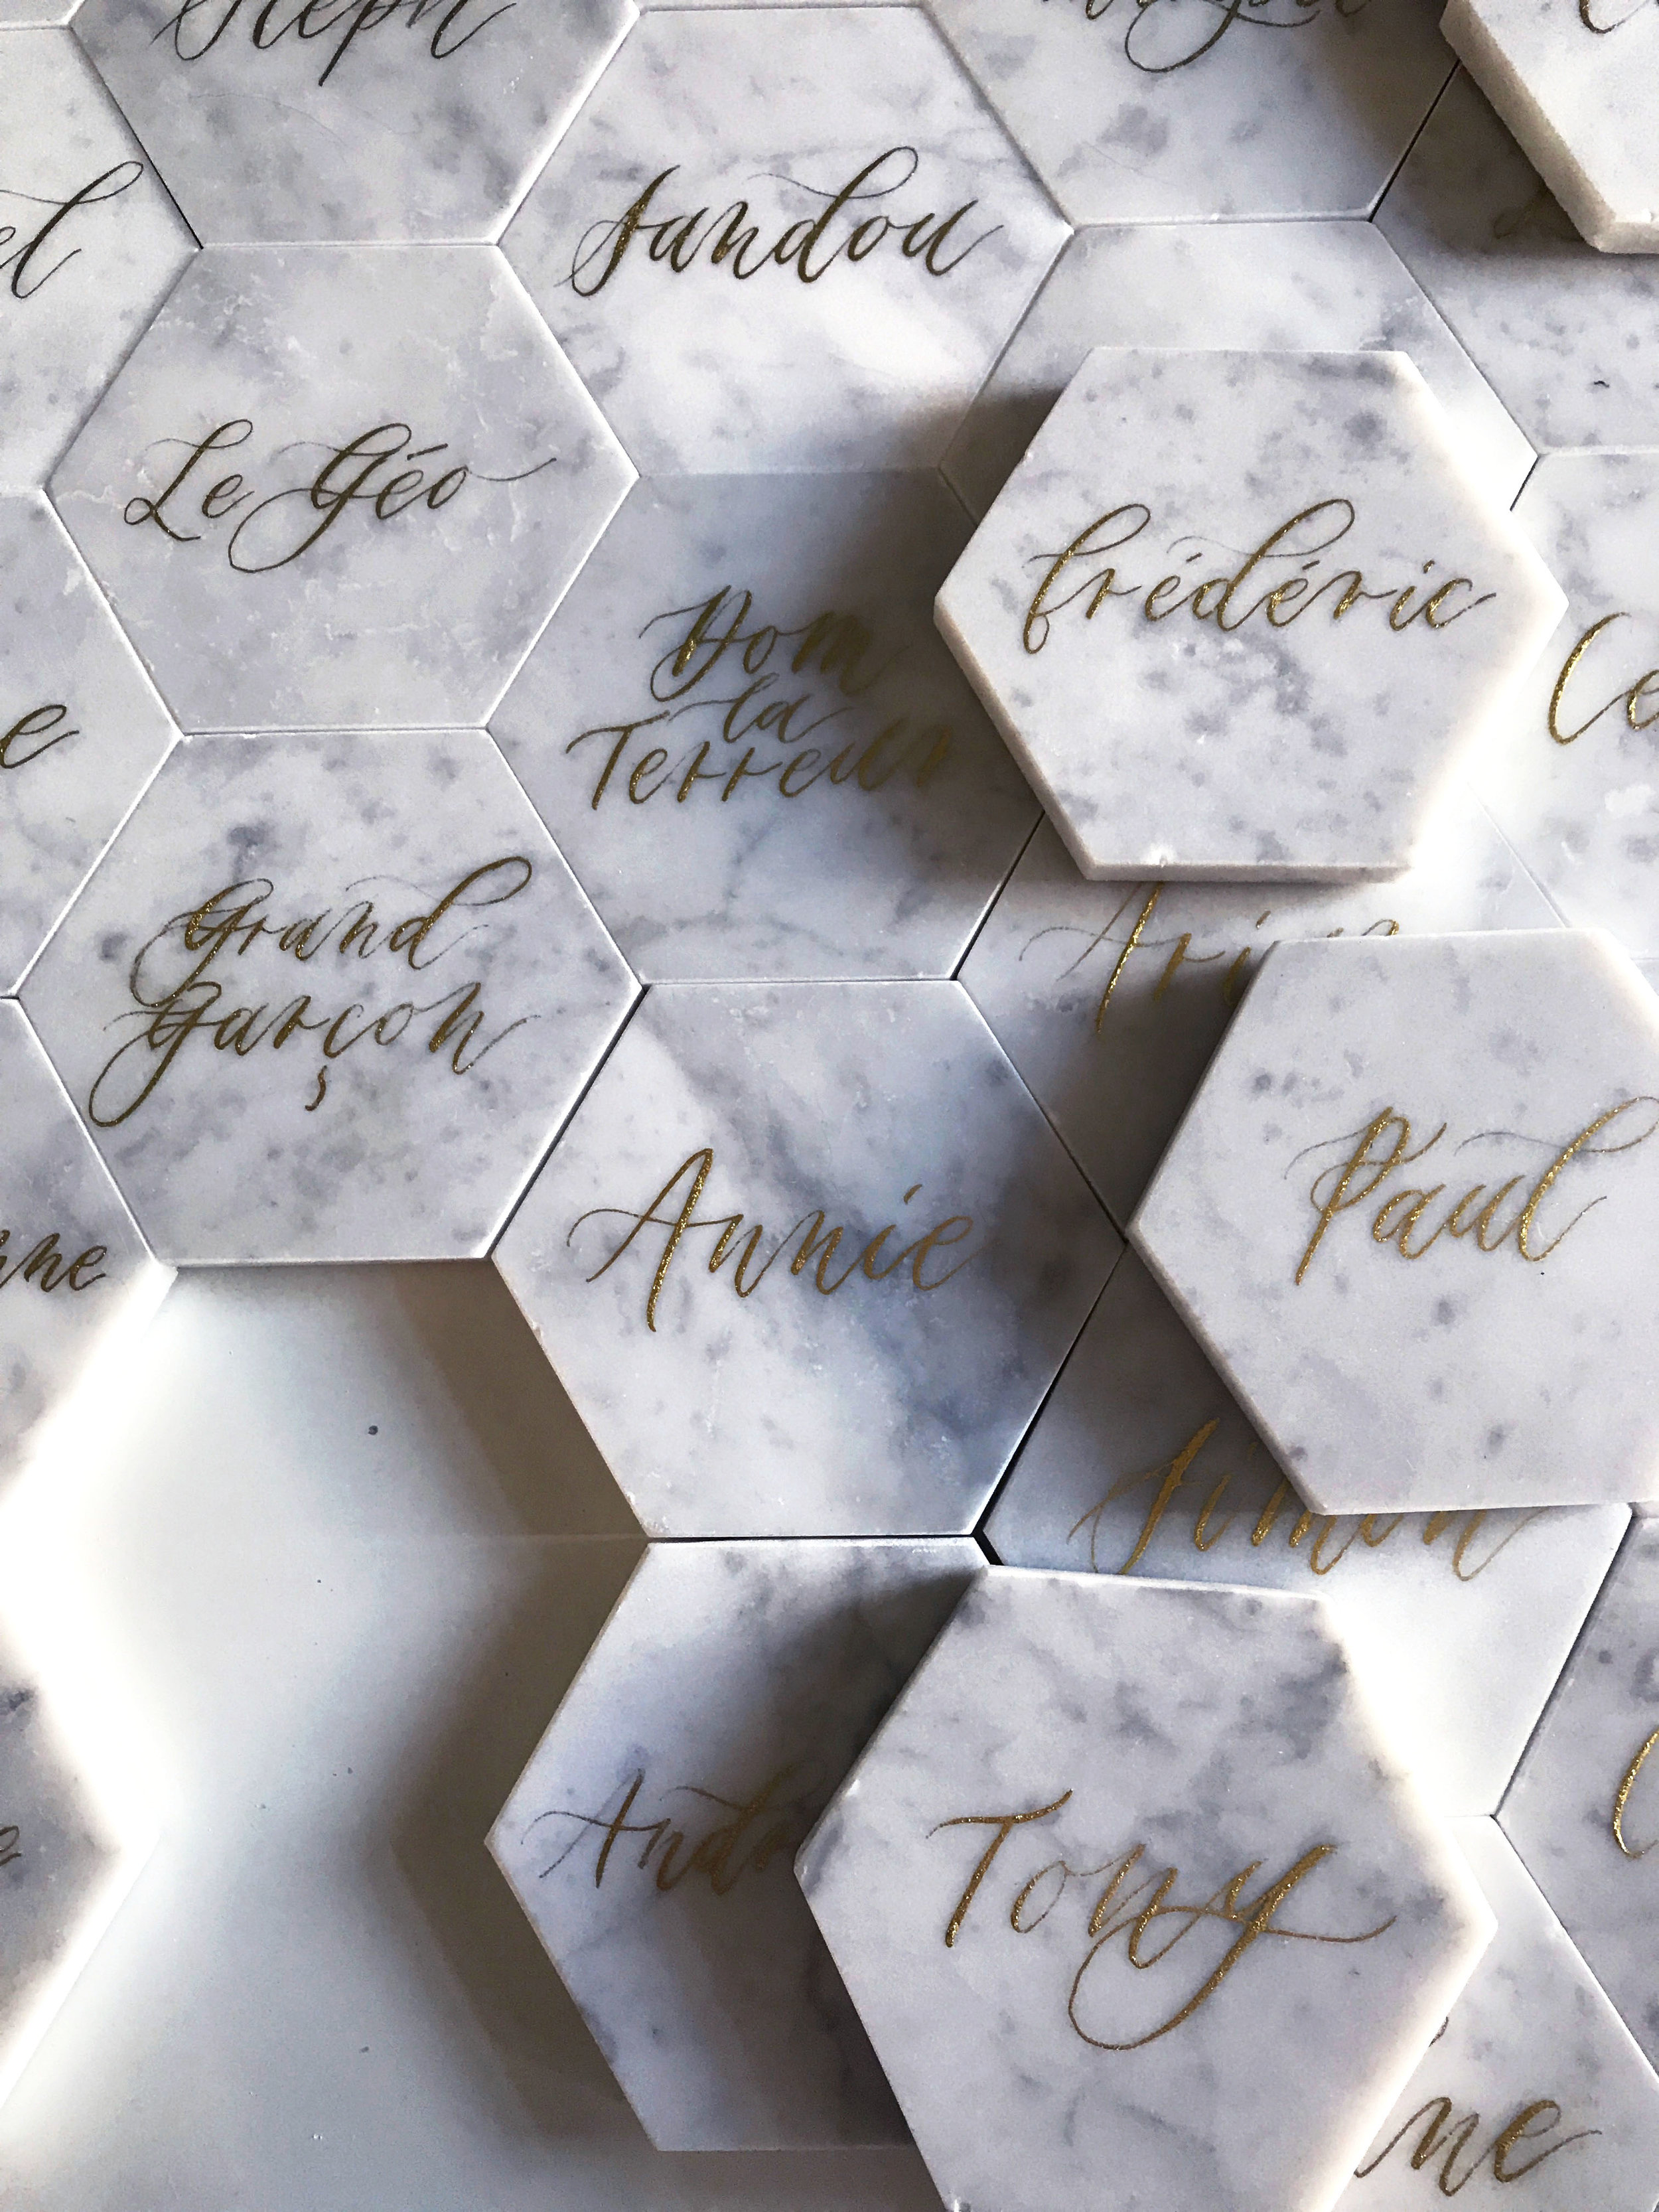 Montreal Marble Place Cards - Marques Place sur Marbre